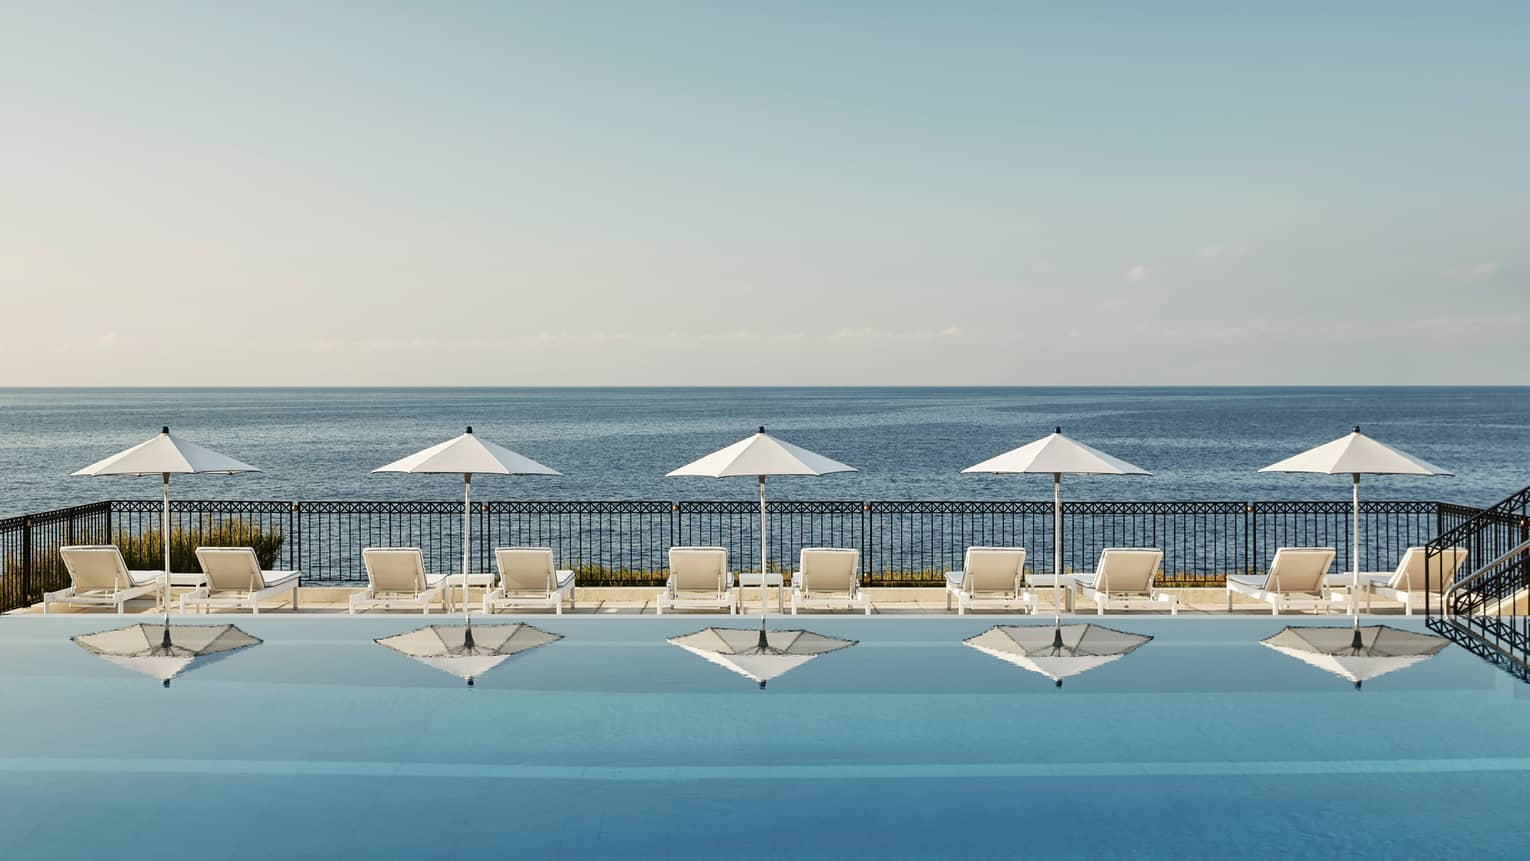 White patio chairs, umbrellas reflected on outdoor swimming pool by sea